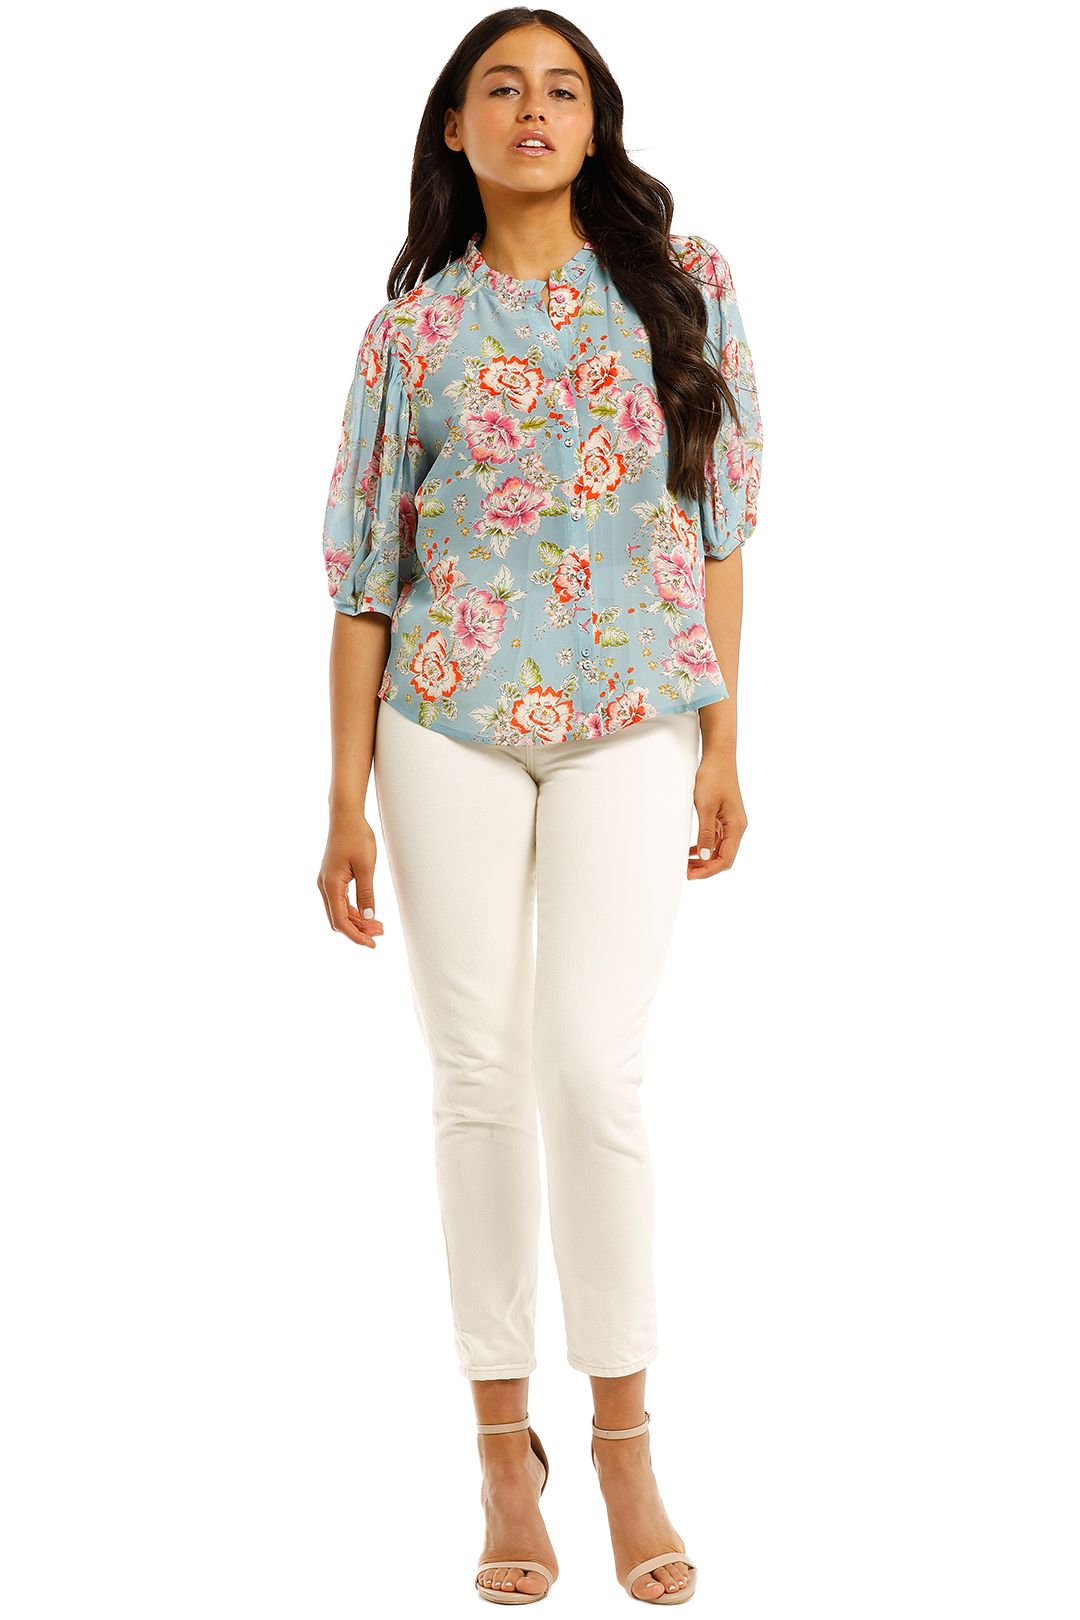 Kachel-Julia-High-Neck-Ruffle-Button-Down-Blouse-Front